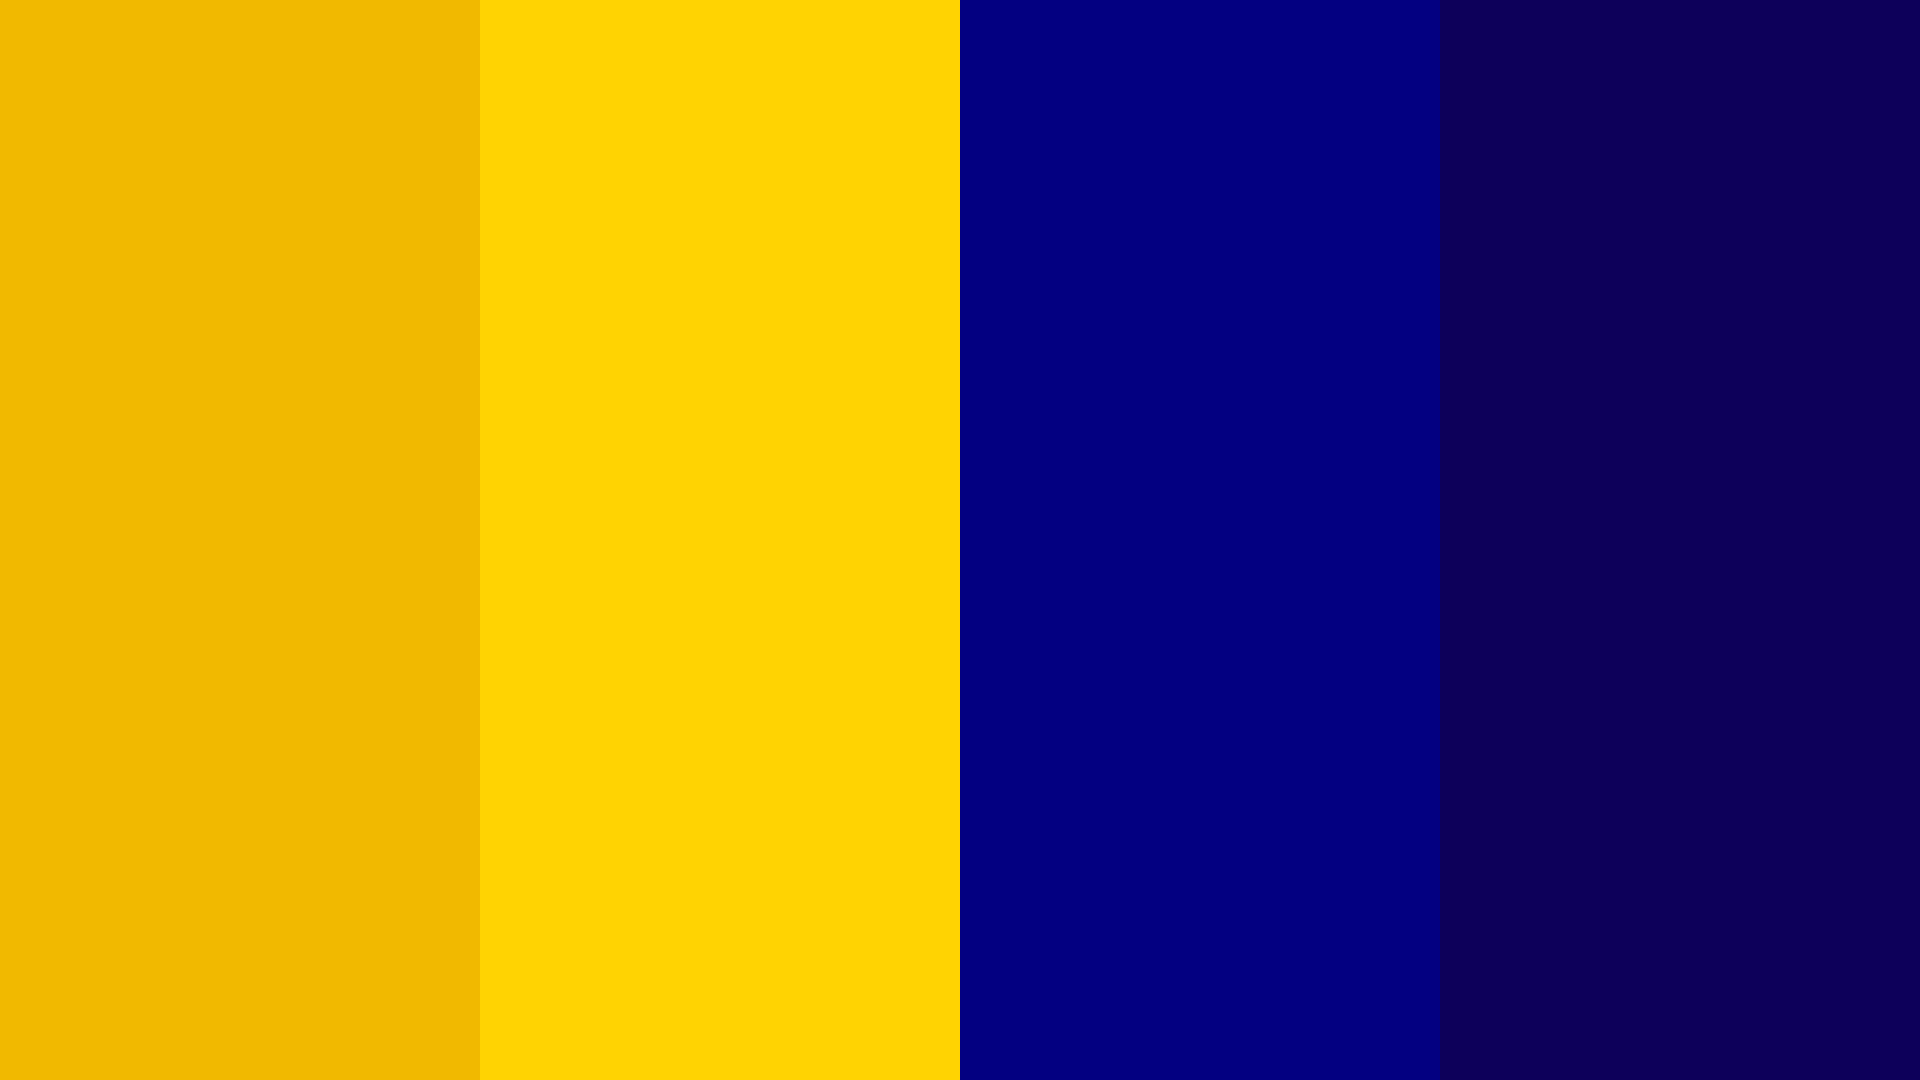 Yellow & Navy Blue Color Palette